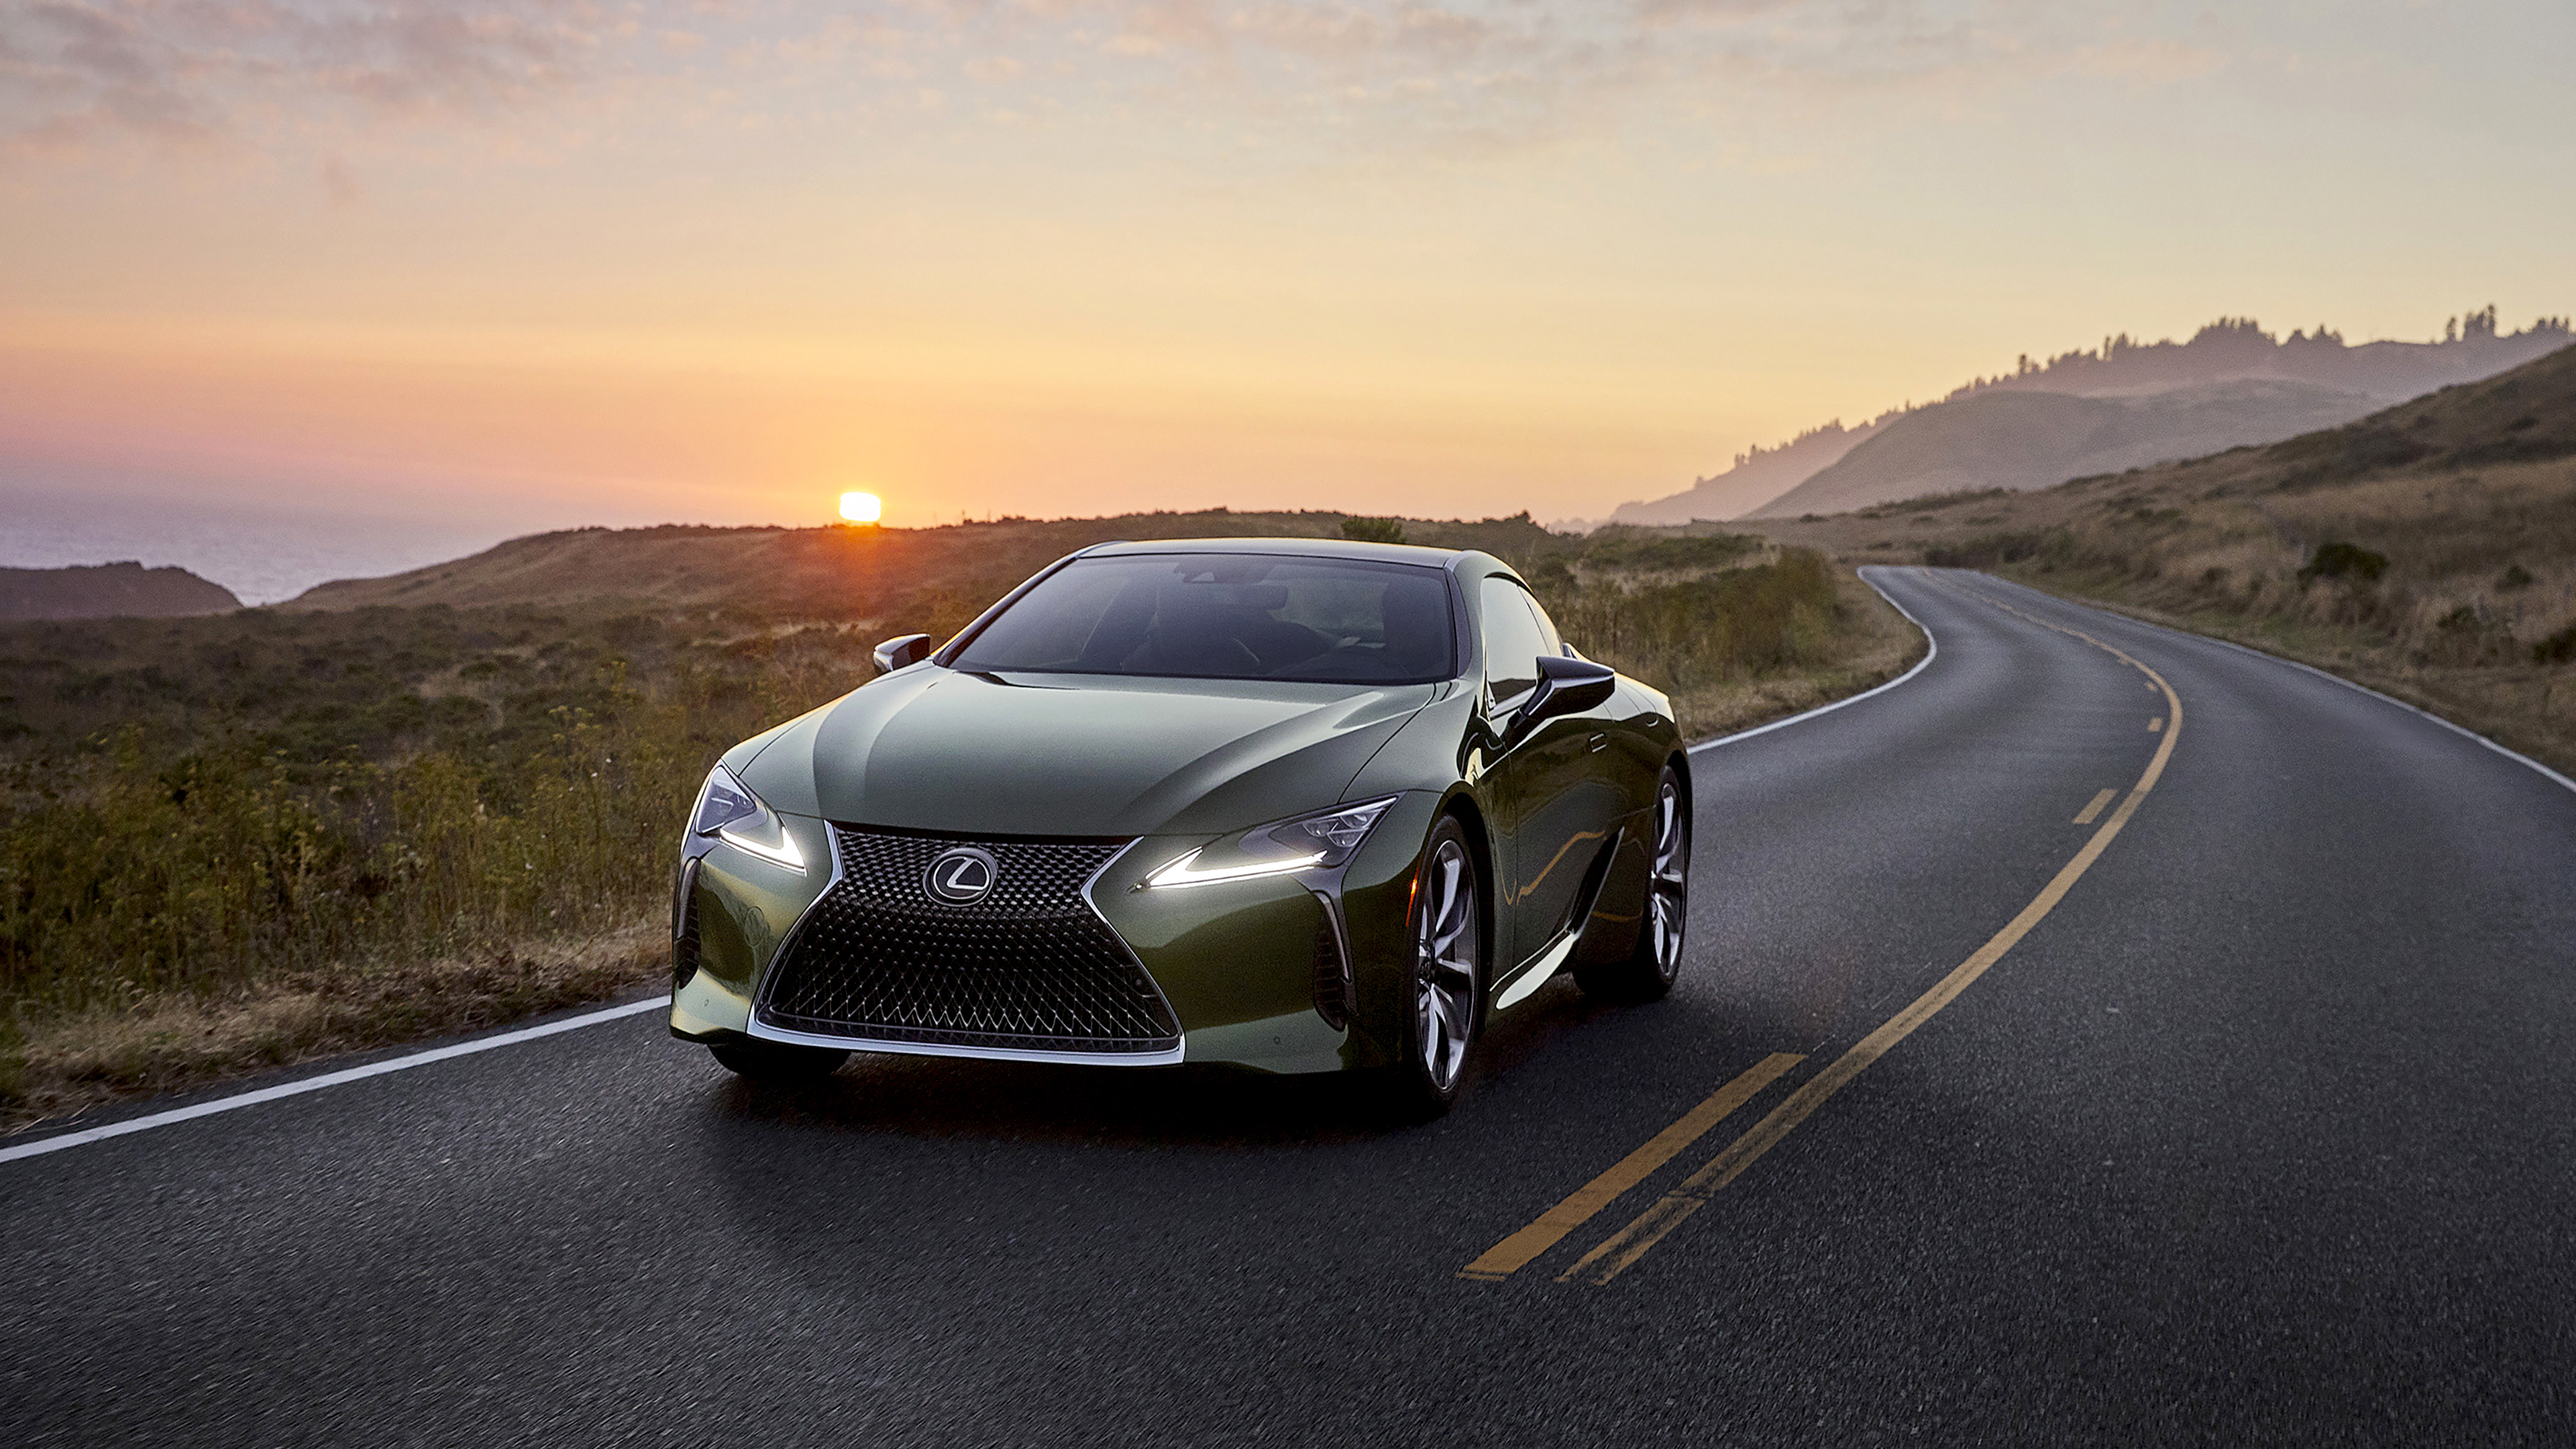 2020 Lexus LC 500 Inspiration Series 4K Wallpaper